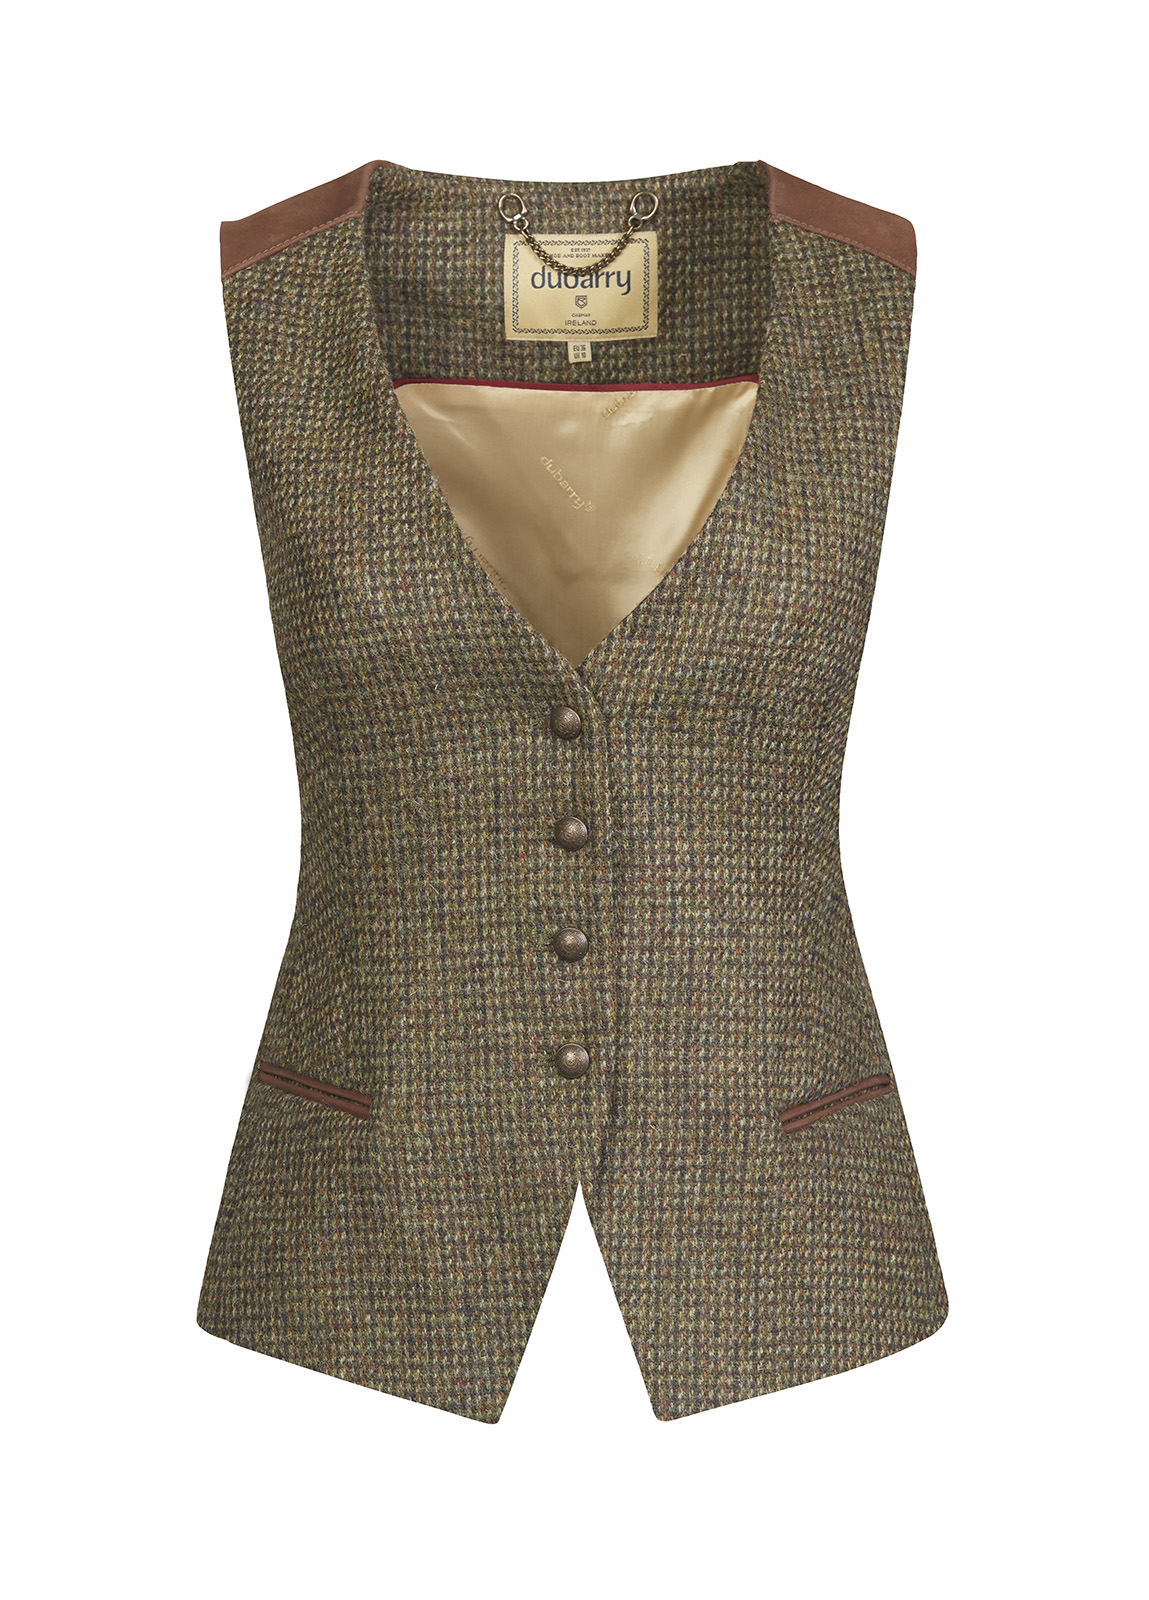 Dubarry_ Daisy Fitted Tweed Waistcoat - Heath_Image_2